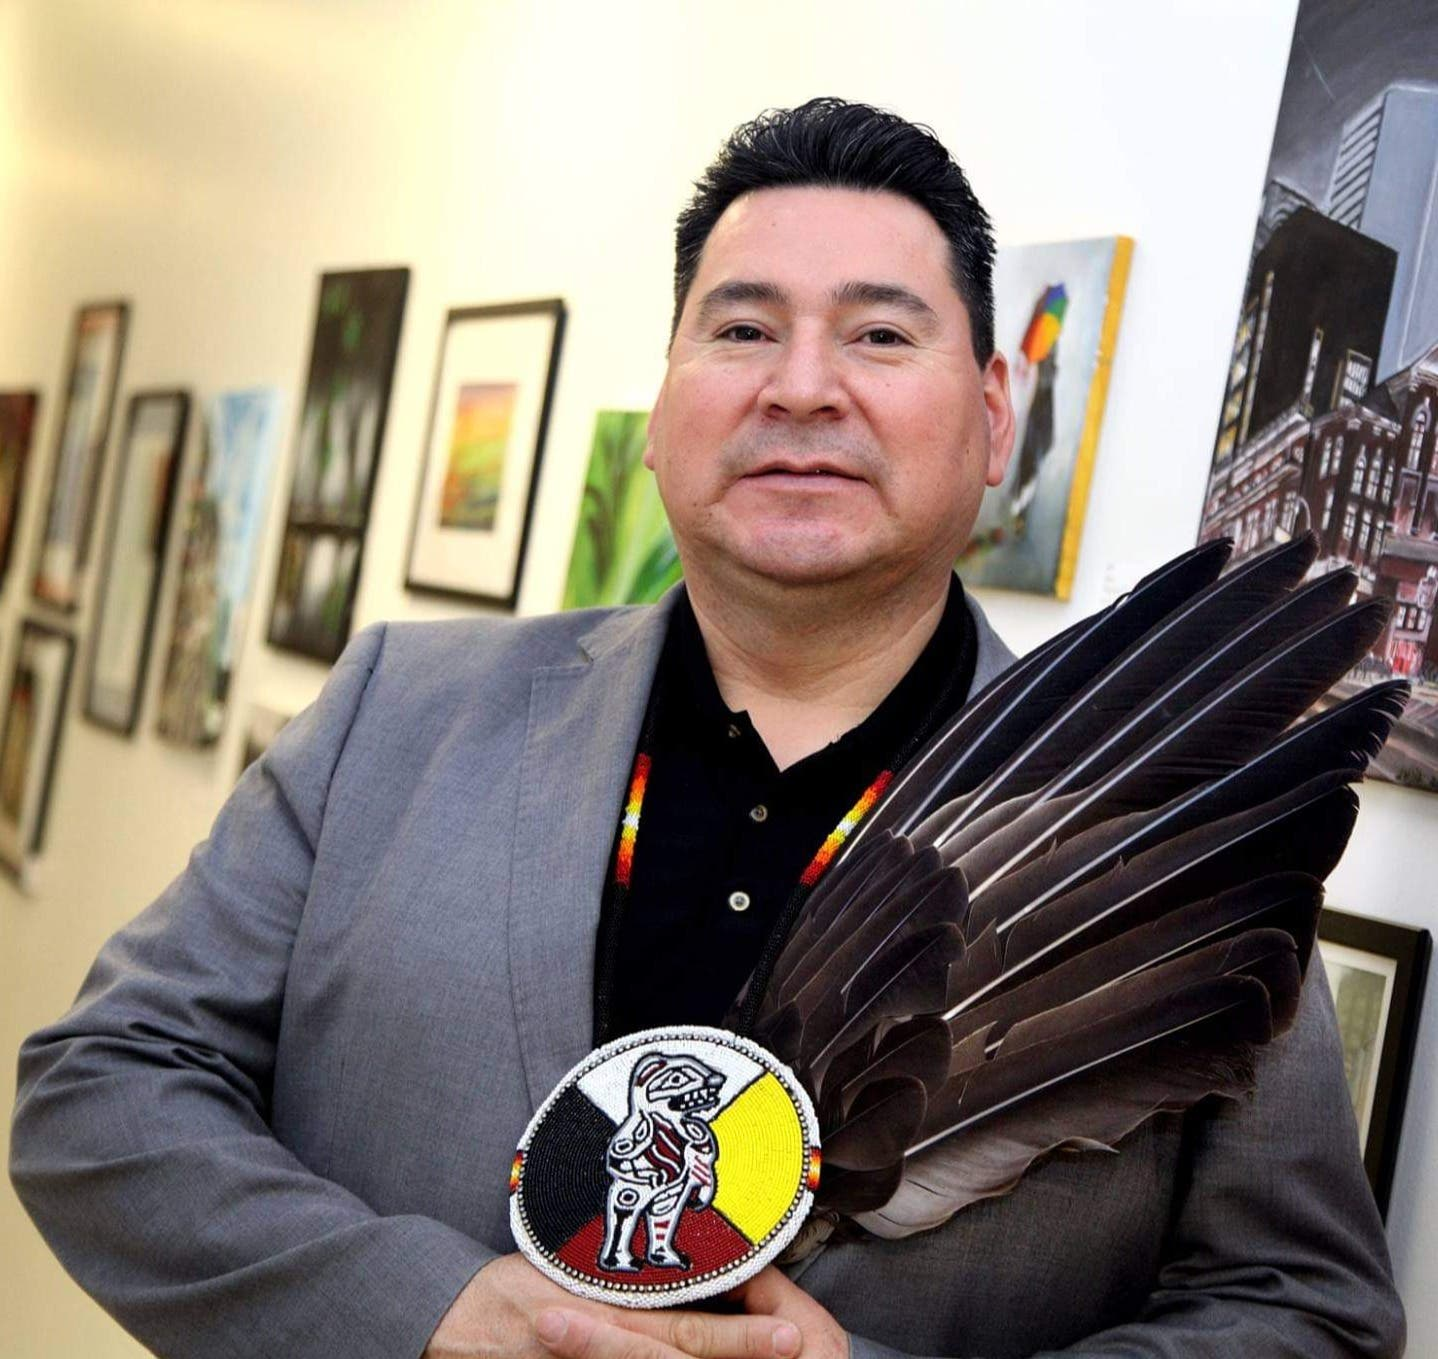 Bear Standing Tall holding bald eagle feather